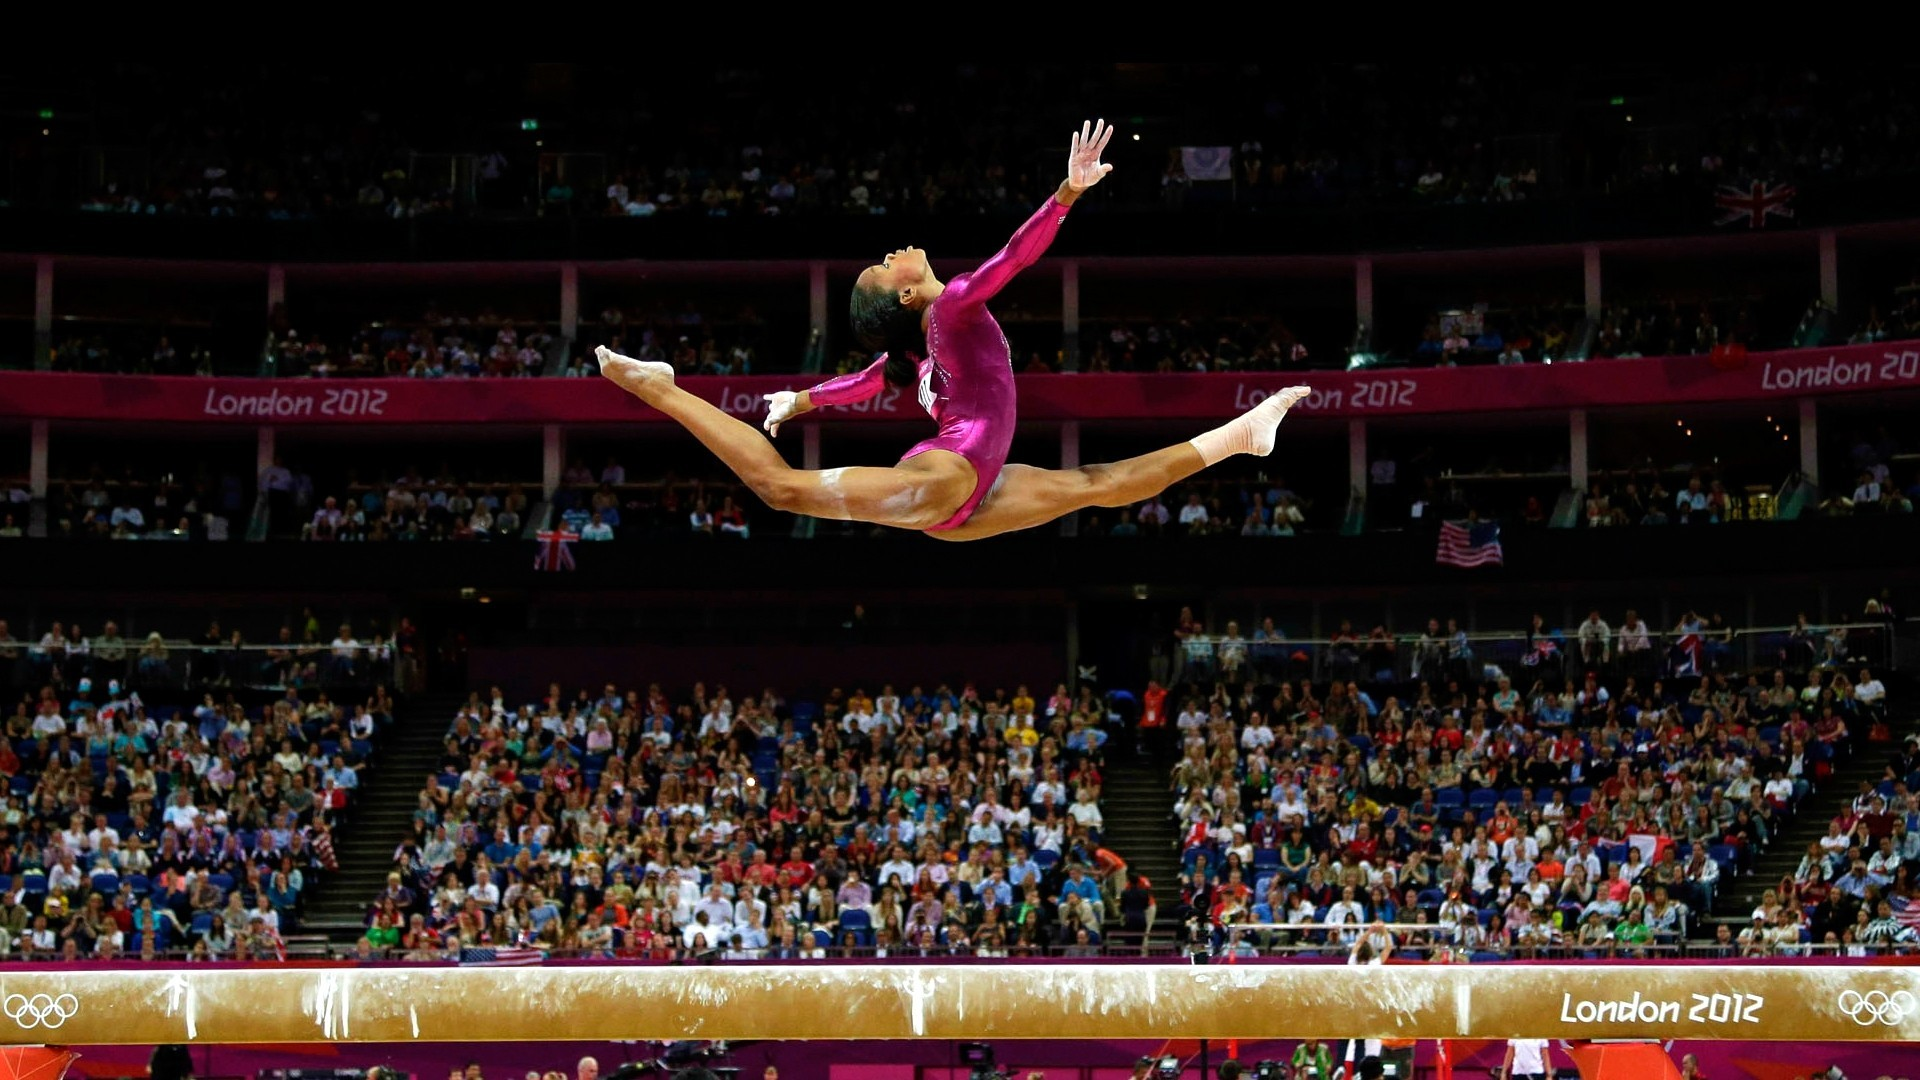 Cool Gymnastics Wallpapers 46 images 1920x1080